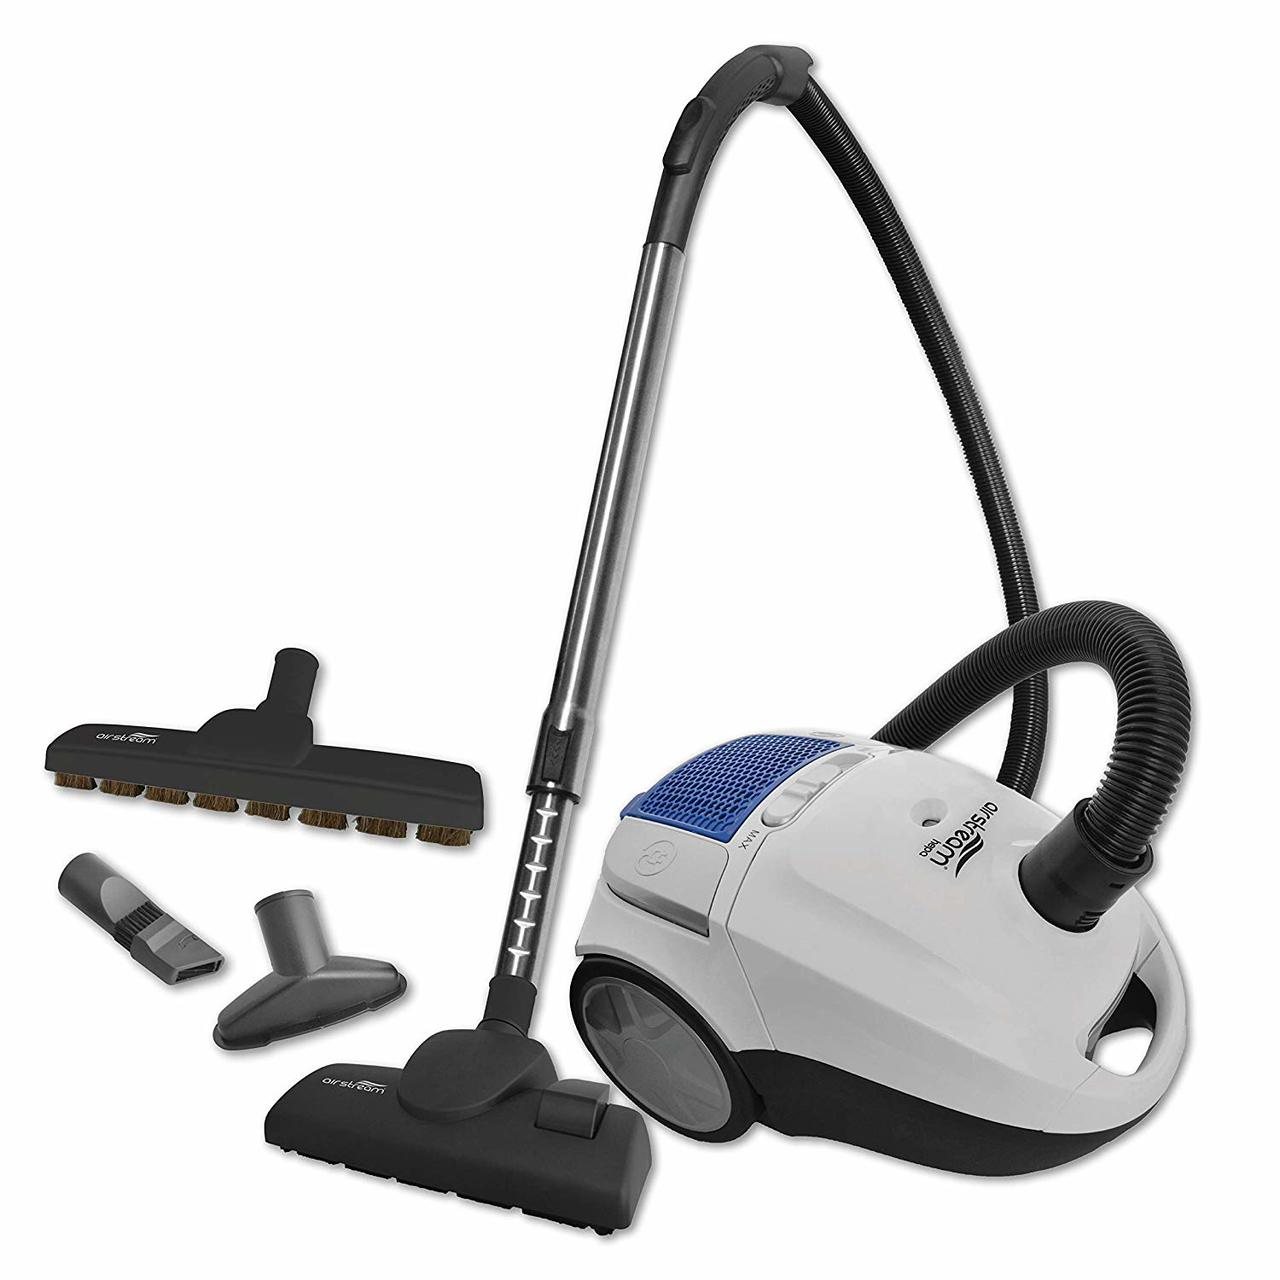 Airstream AS100 Corded Lightweight Canister Vacuum - Super Vacs